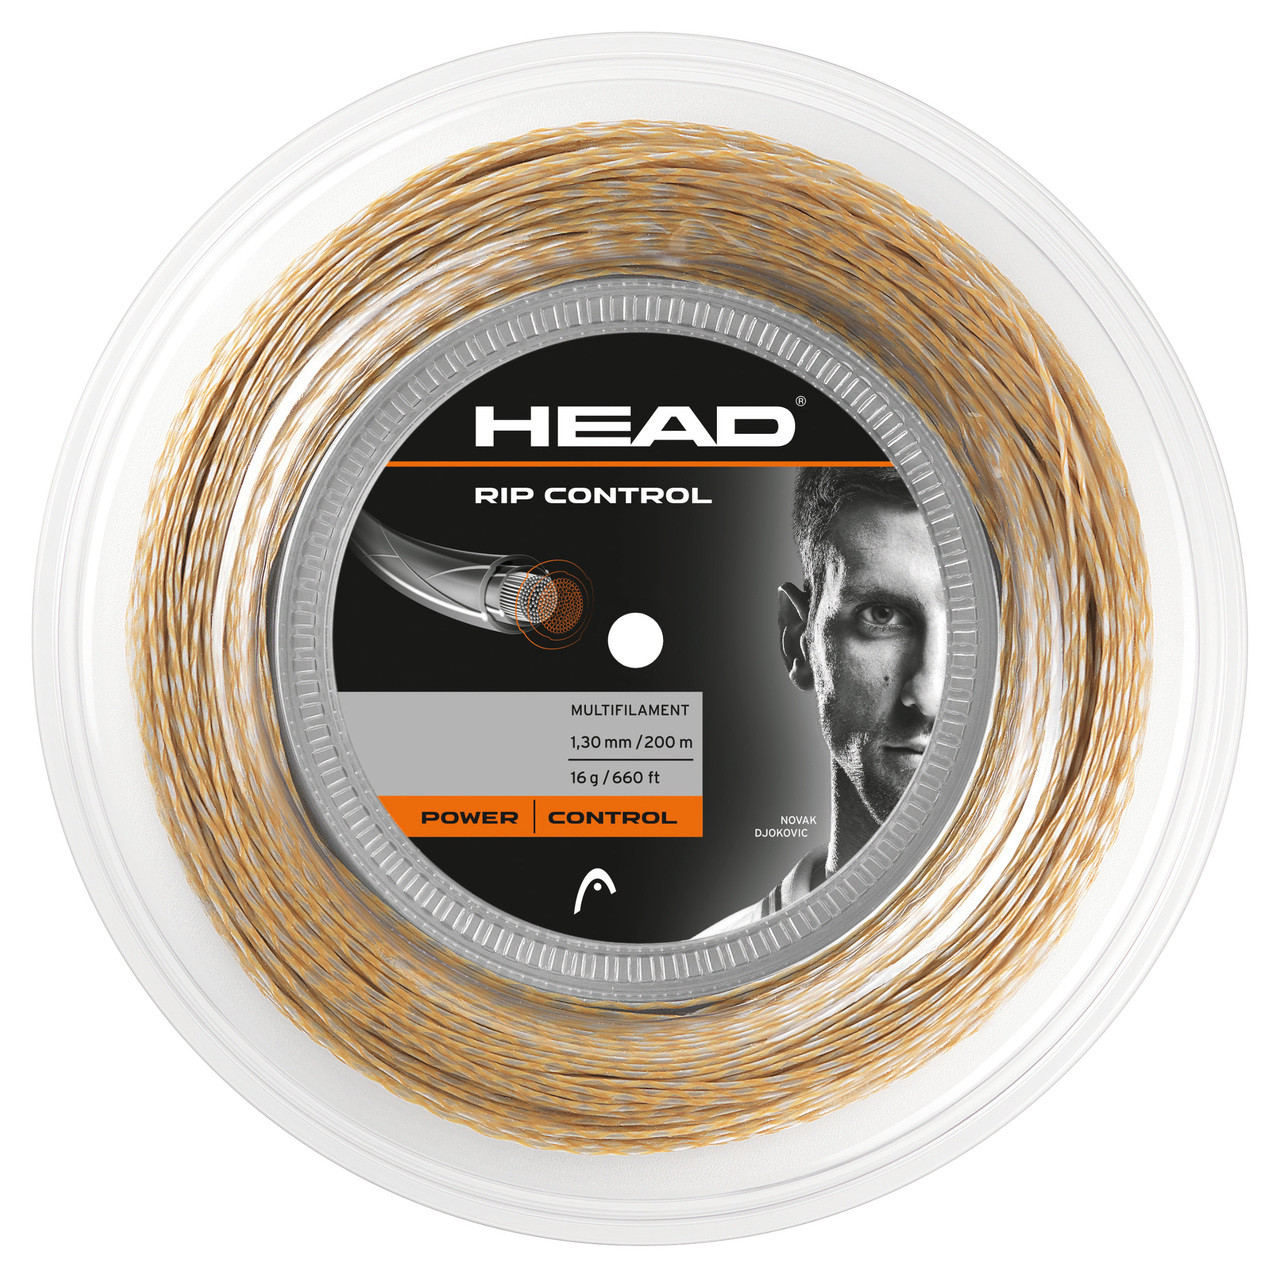 e28b48519 Head RIP Control 16 1.30mm 200M Reel - W   D Strings